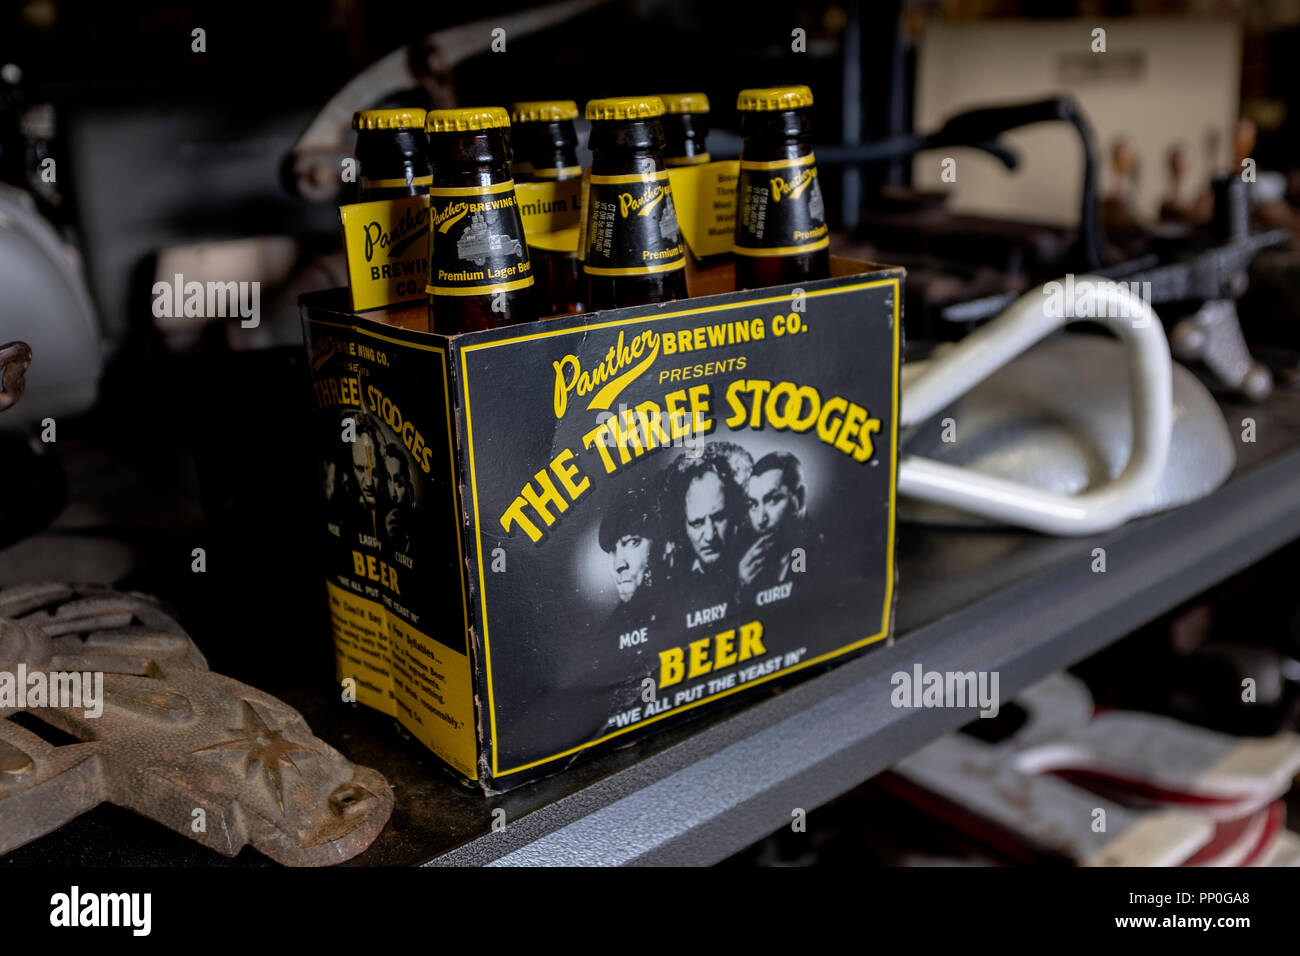 six pack of The Three Stooges beer Stock Photo